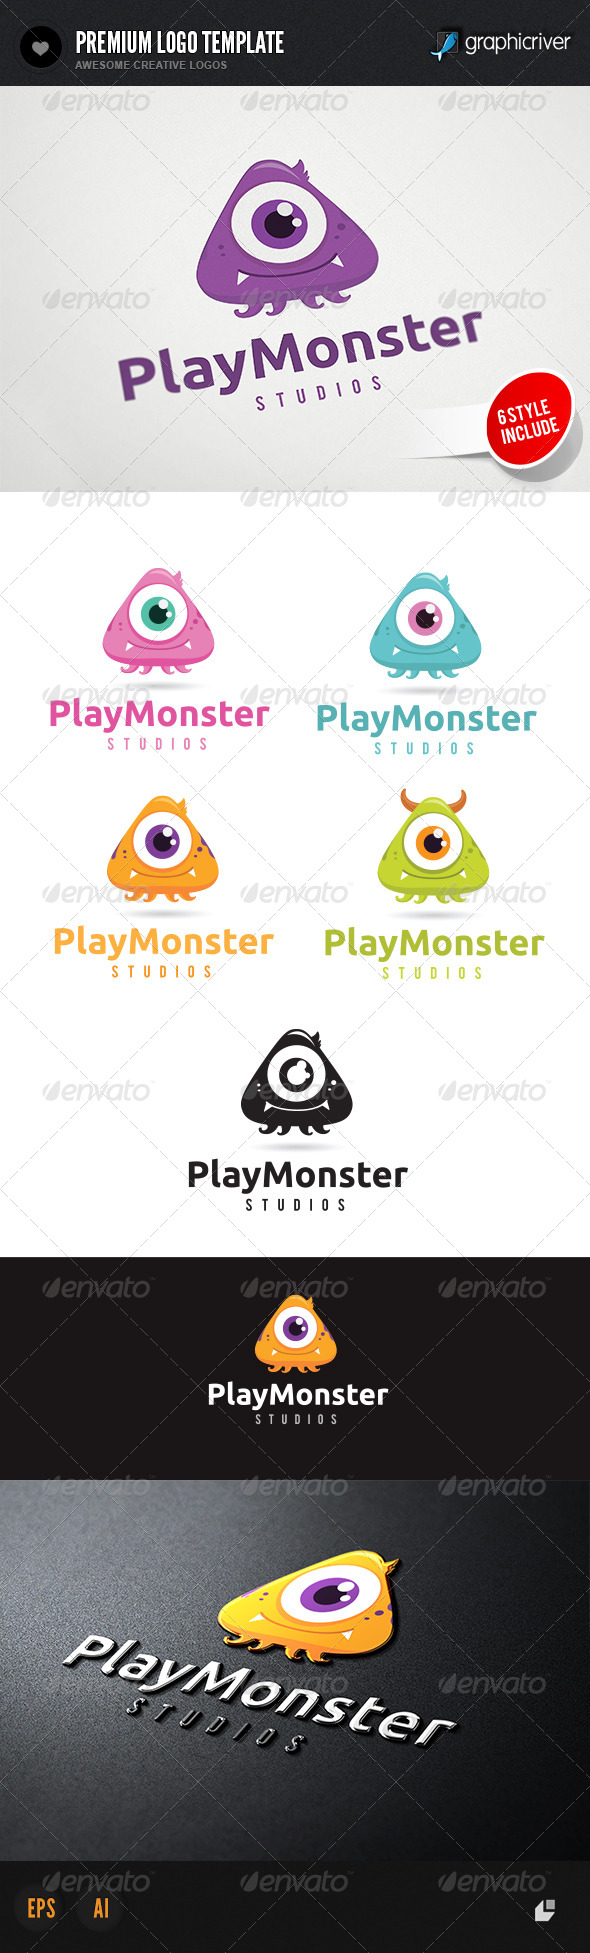 Play Monster Logo - 3d Abstract